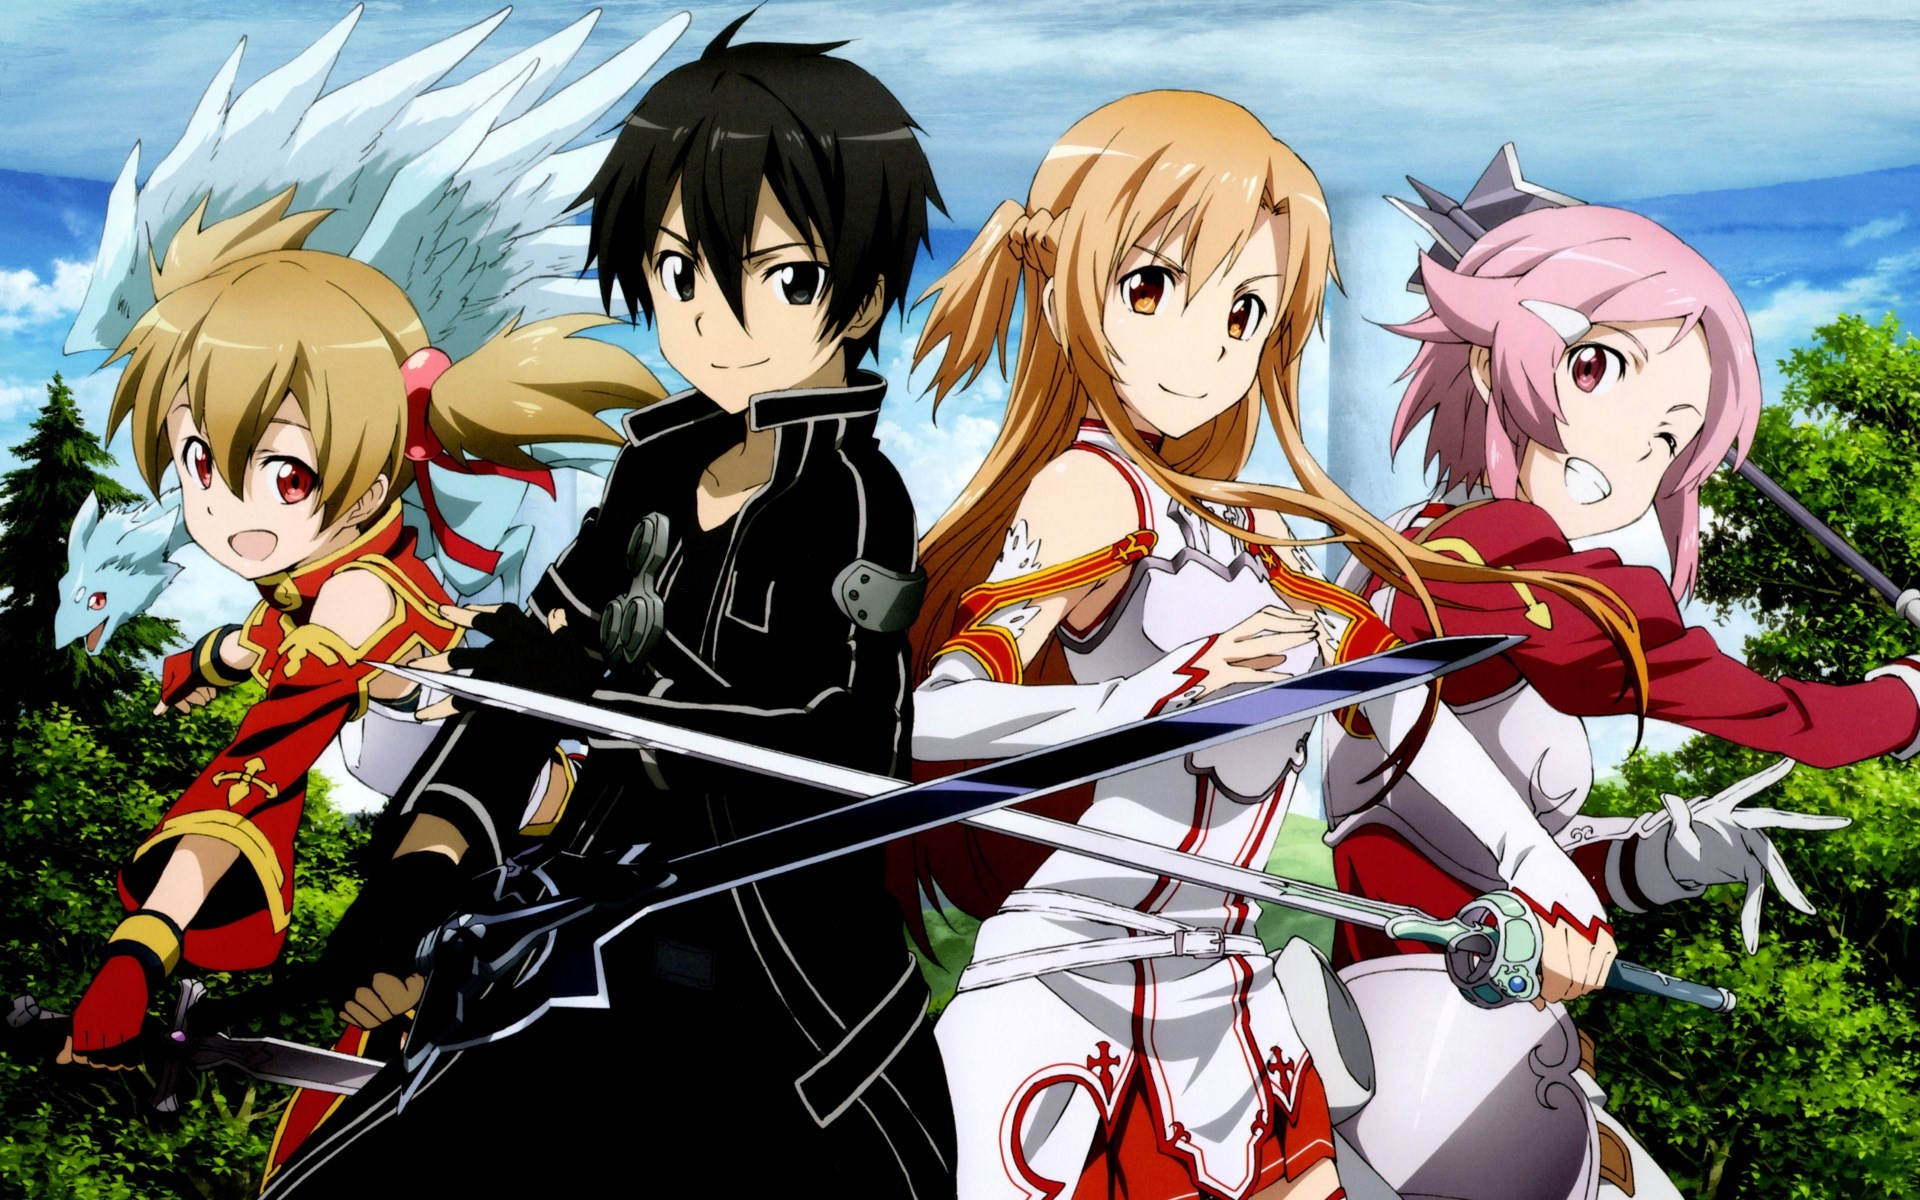 Asuna Yuuki, Silica and Lisbet from the anime series Sword Art Online